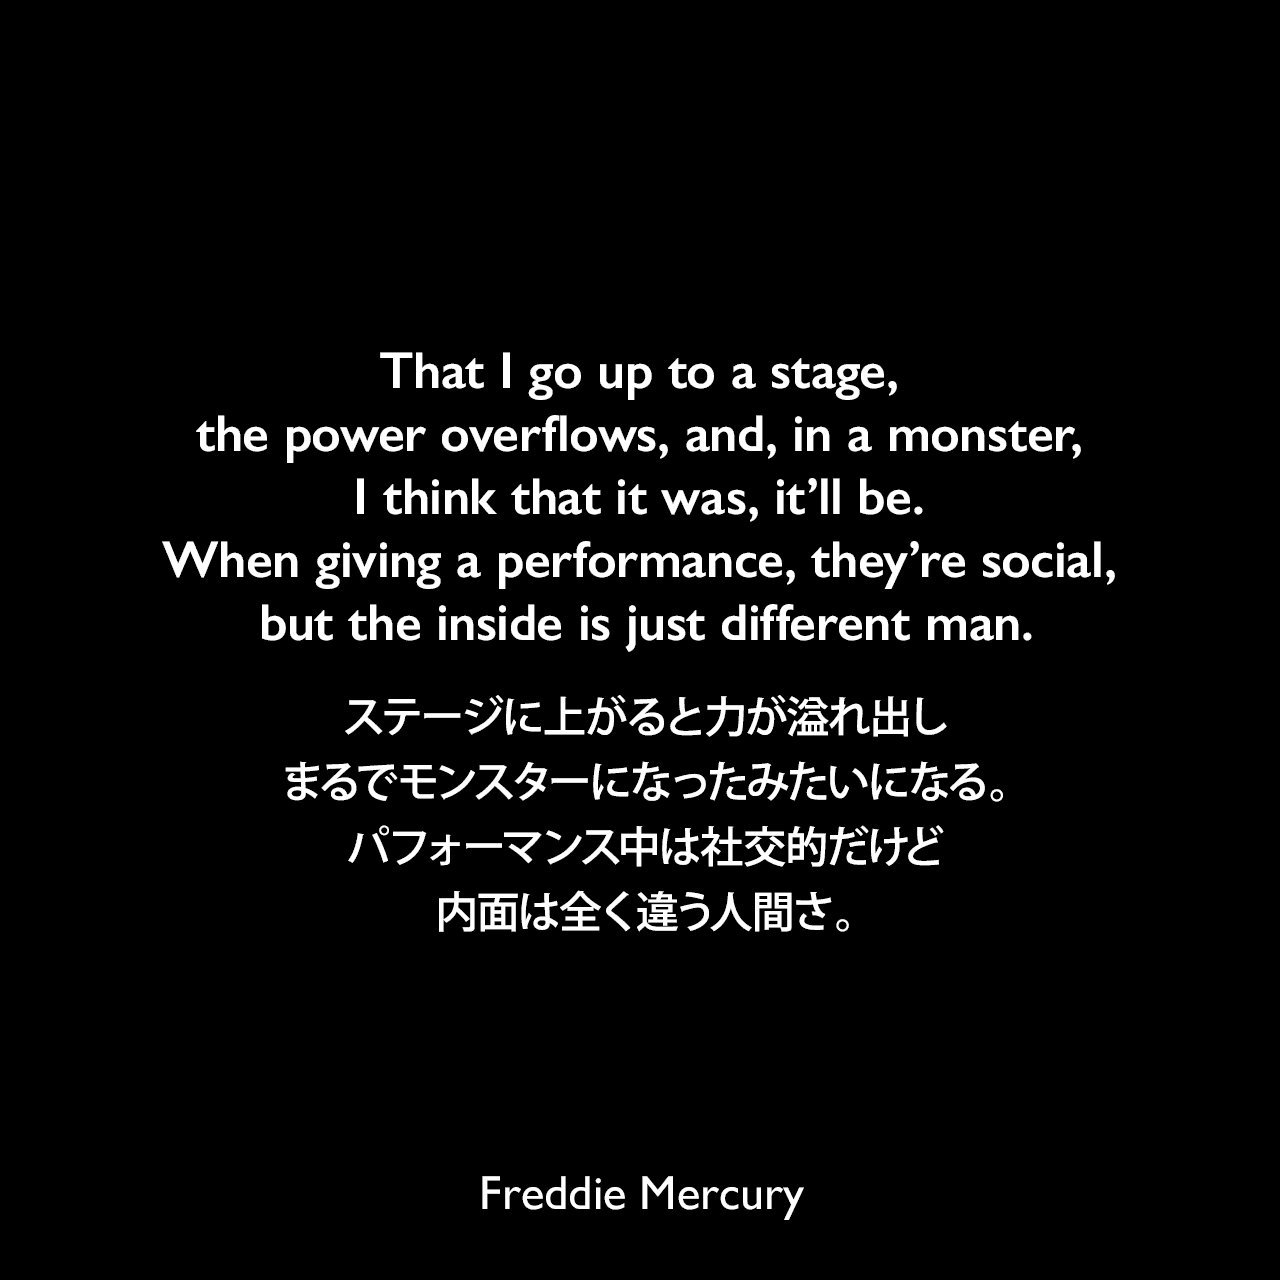 That I go up to a stage, the power overflows, and, in a monster, I think that it was, it'll be. When giving a performance, they're social, but the inside is just different man.ステージに上がると力が溢れ出し、まるでモンスターになったみたいになる。パフォーマンス中は社交的だけど、内面は全く違う人間さ。Freddie Mercury